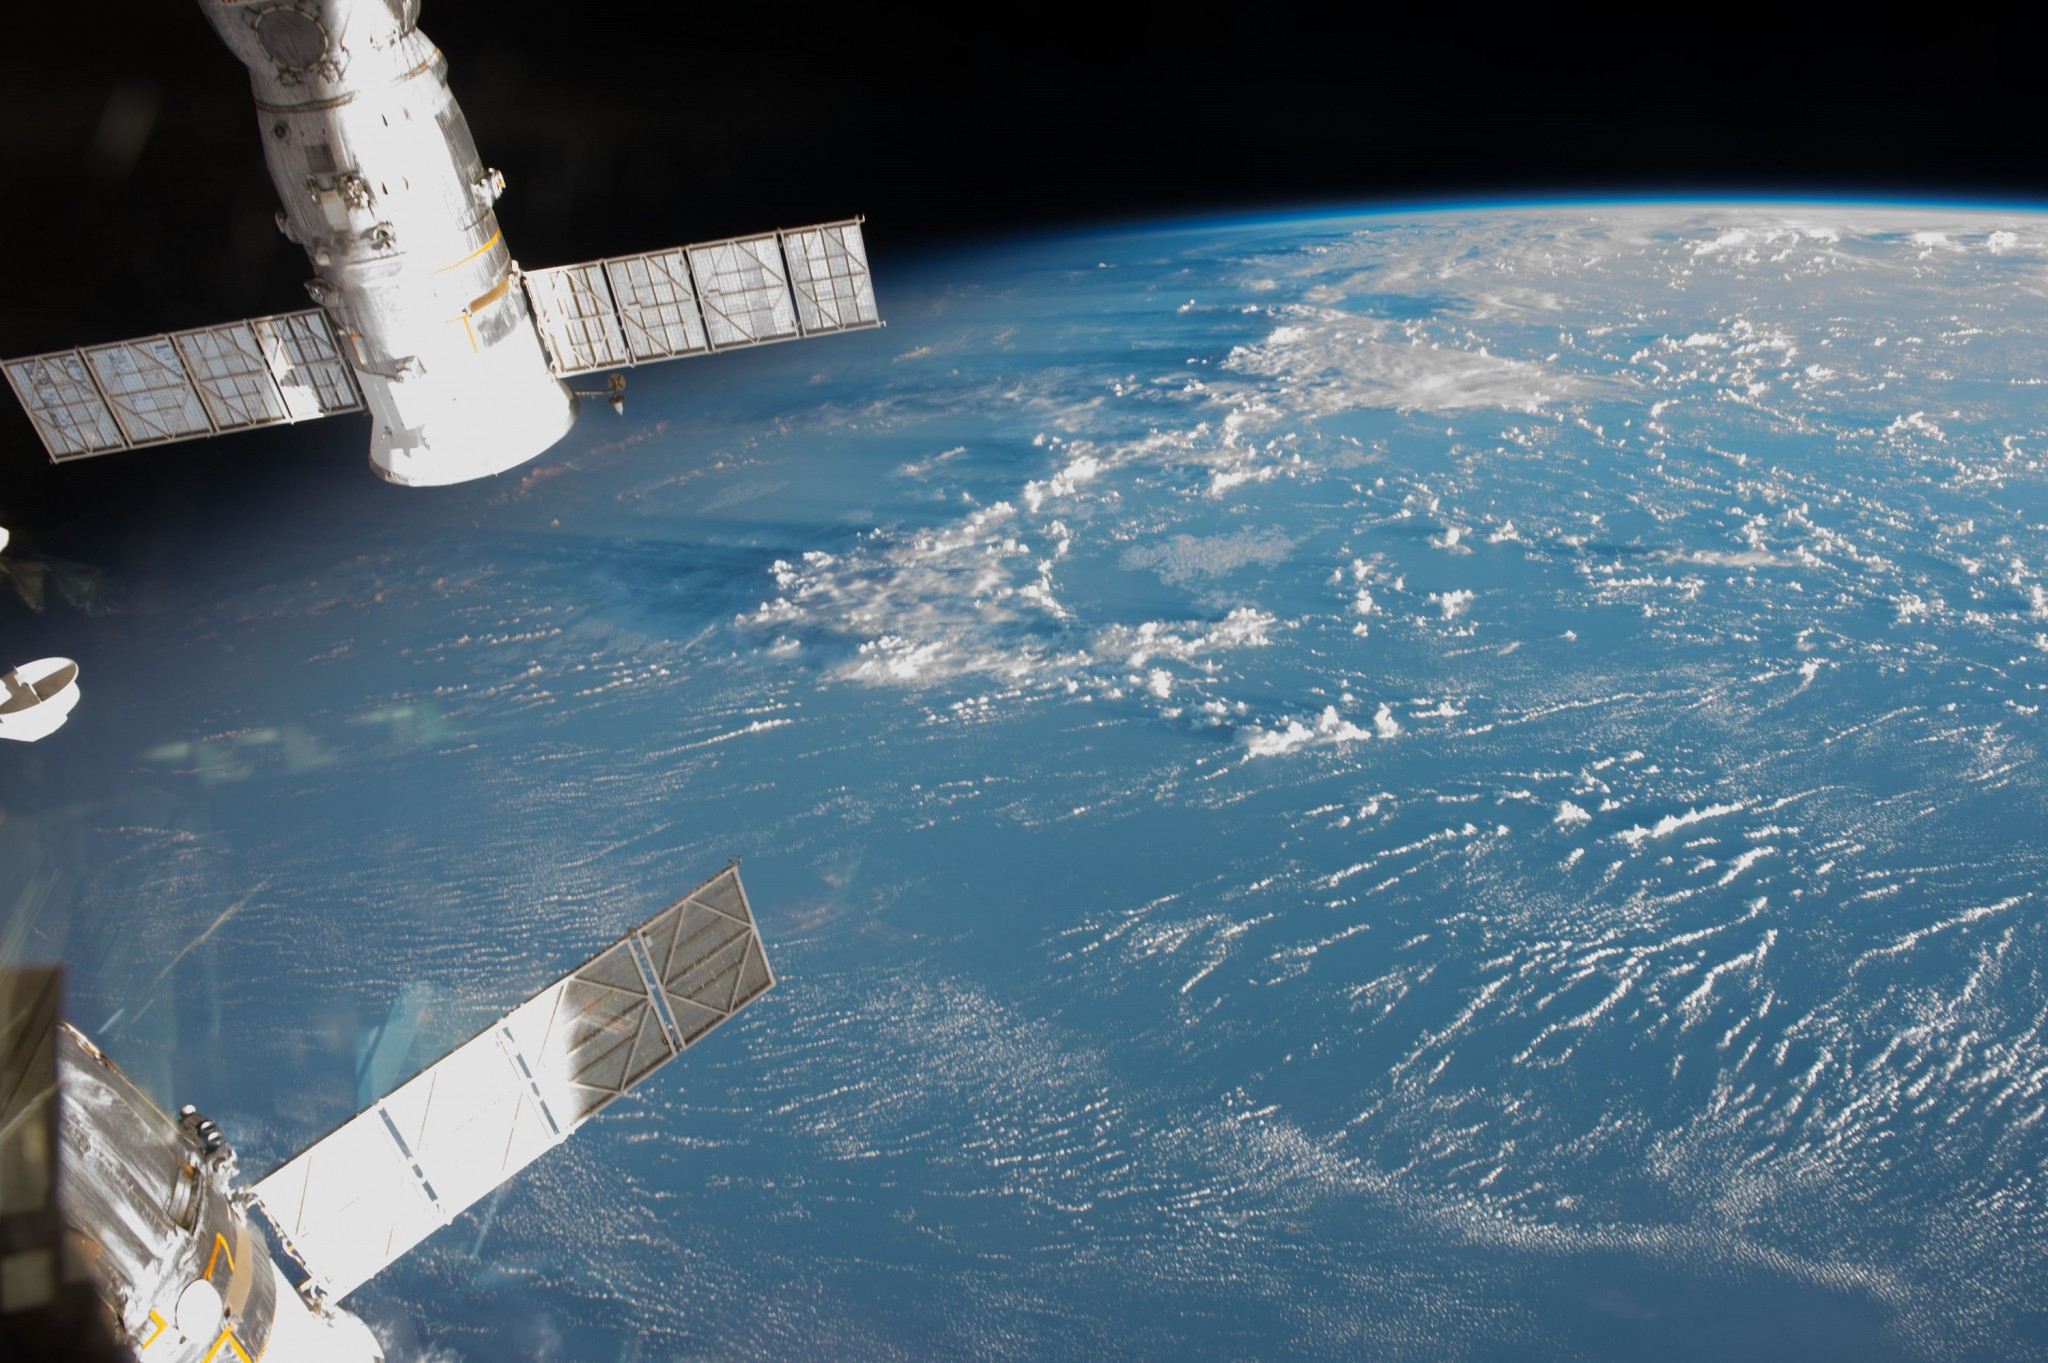 Earth, as seen from the ISS. Photo: NASA.